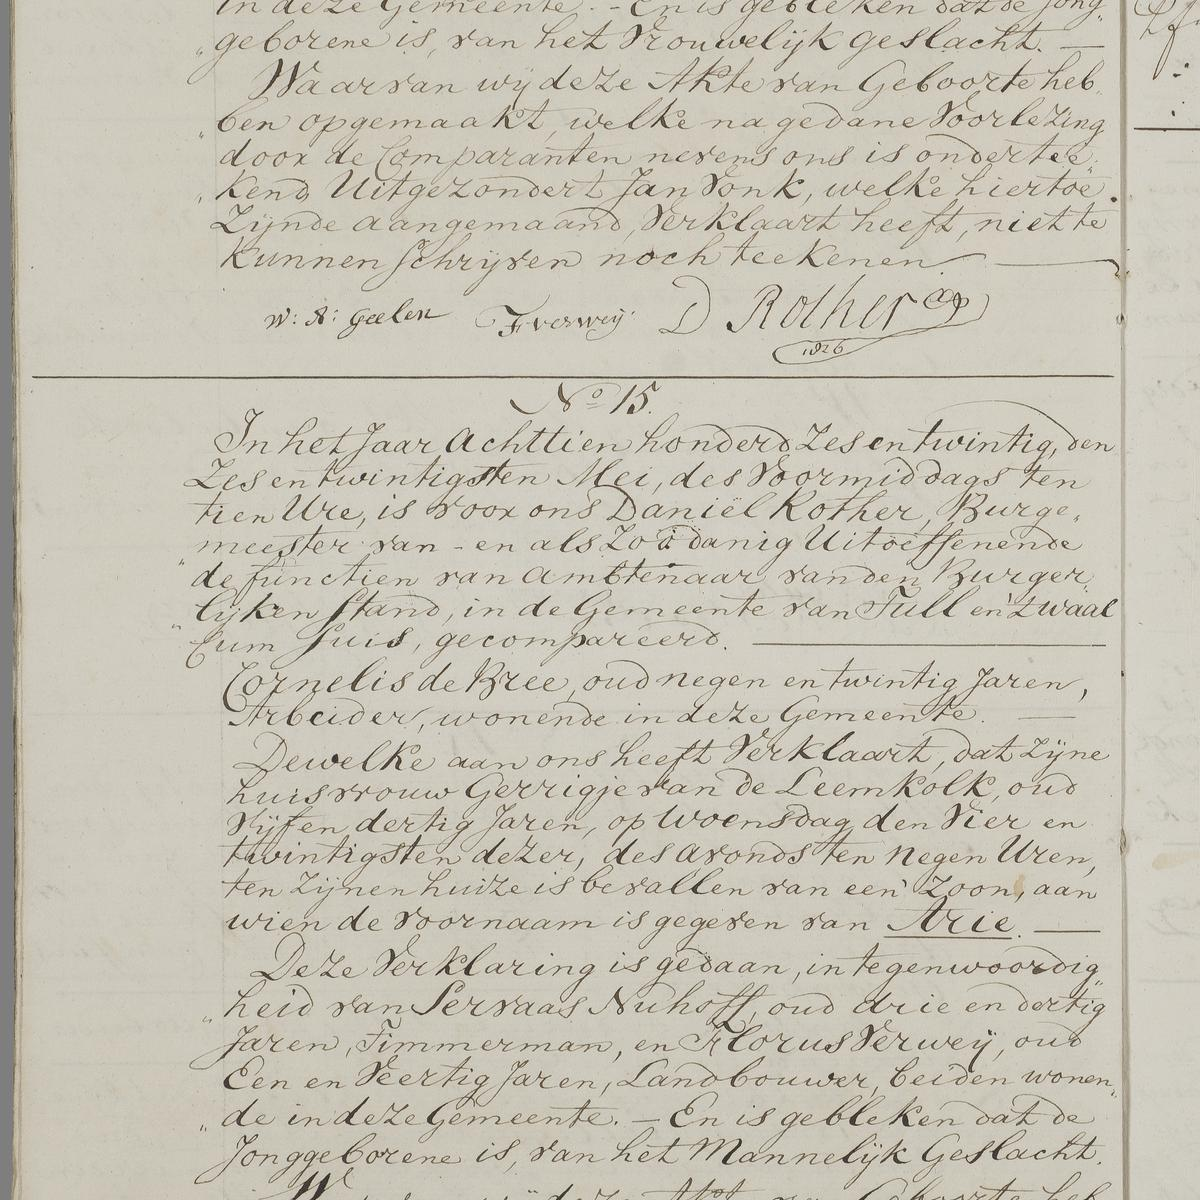 Civil registry of births, Tull en 't Waal, 1826, records 14-15